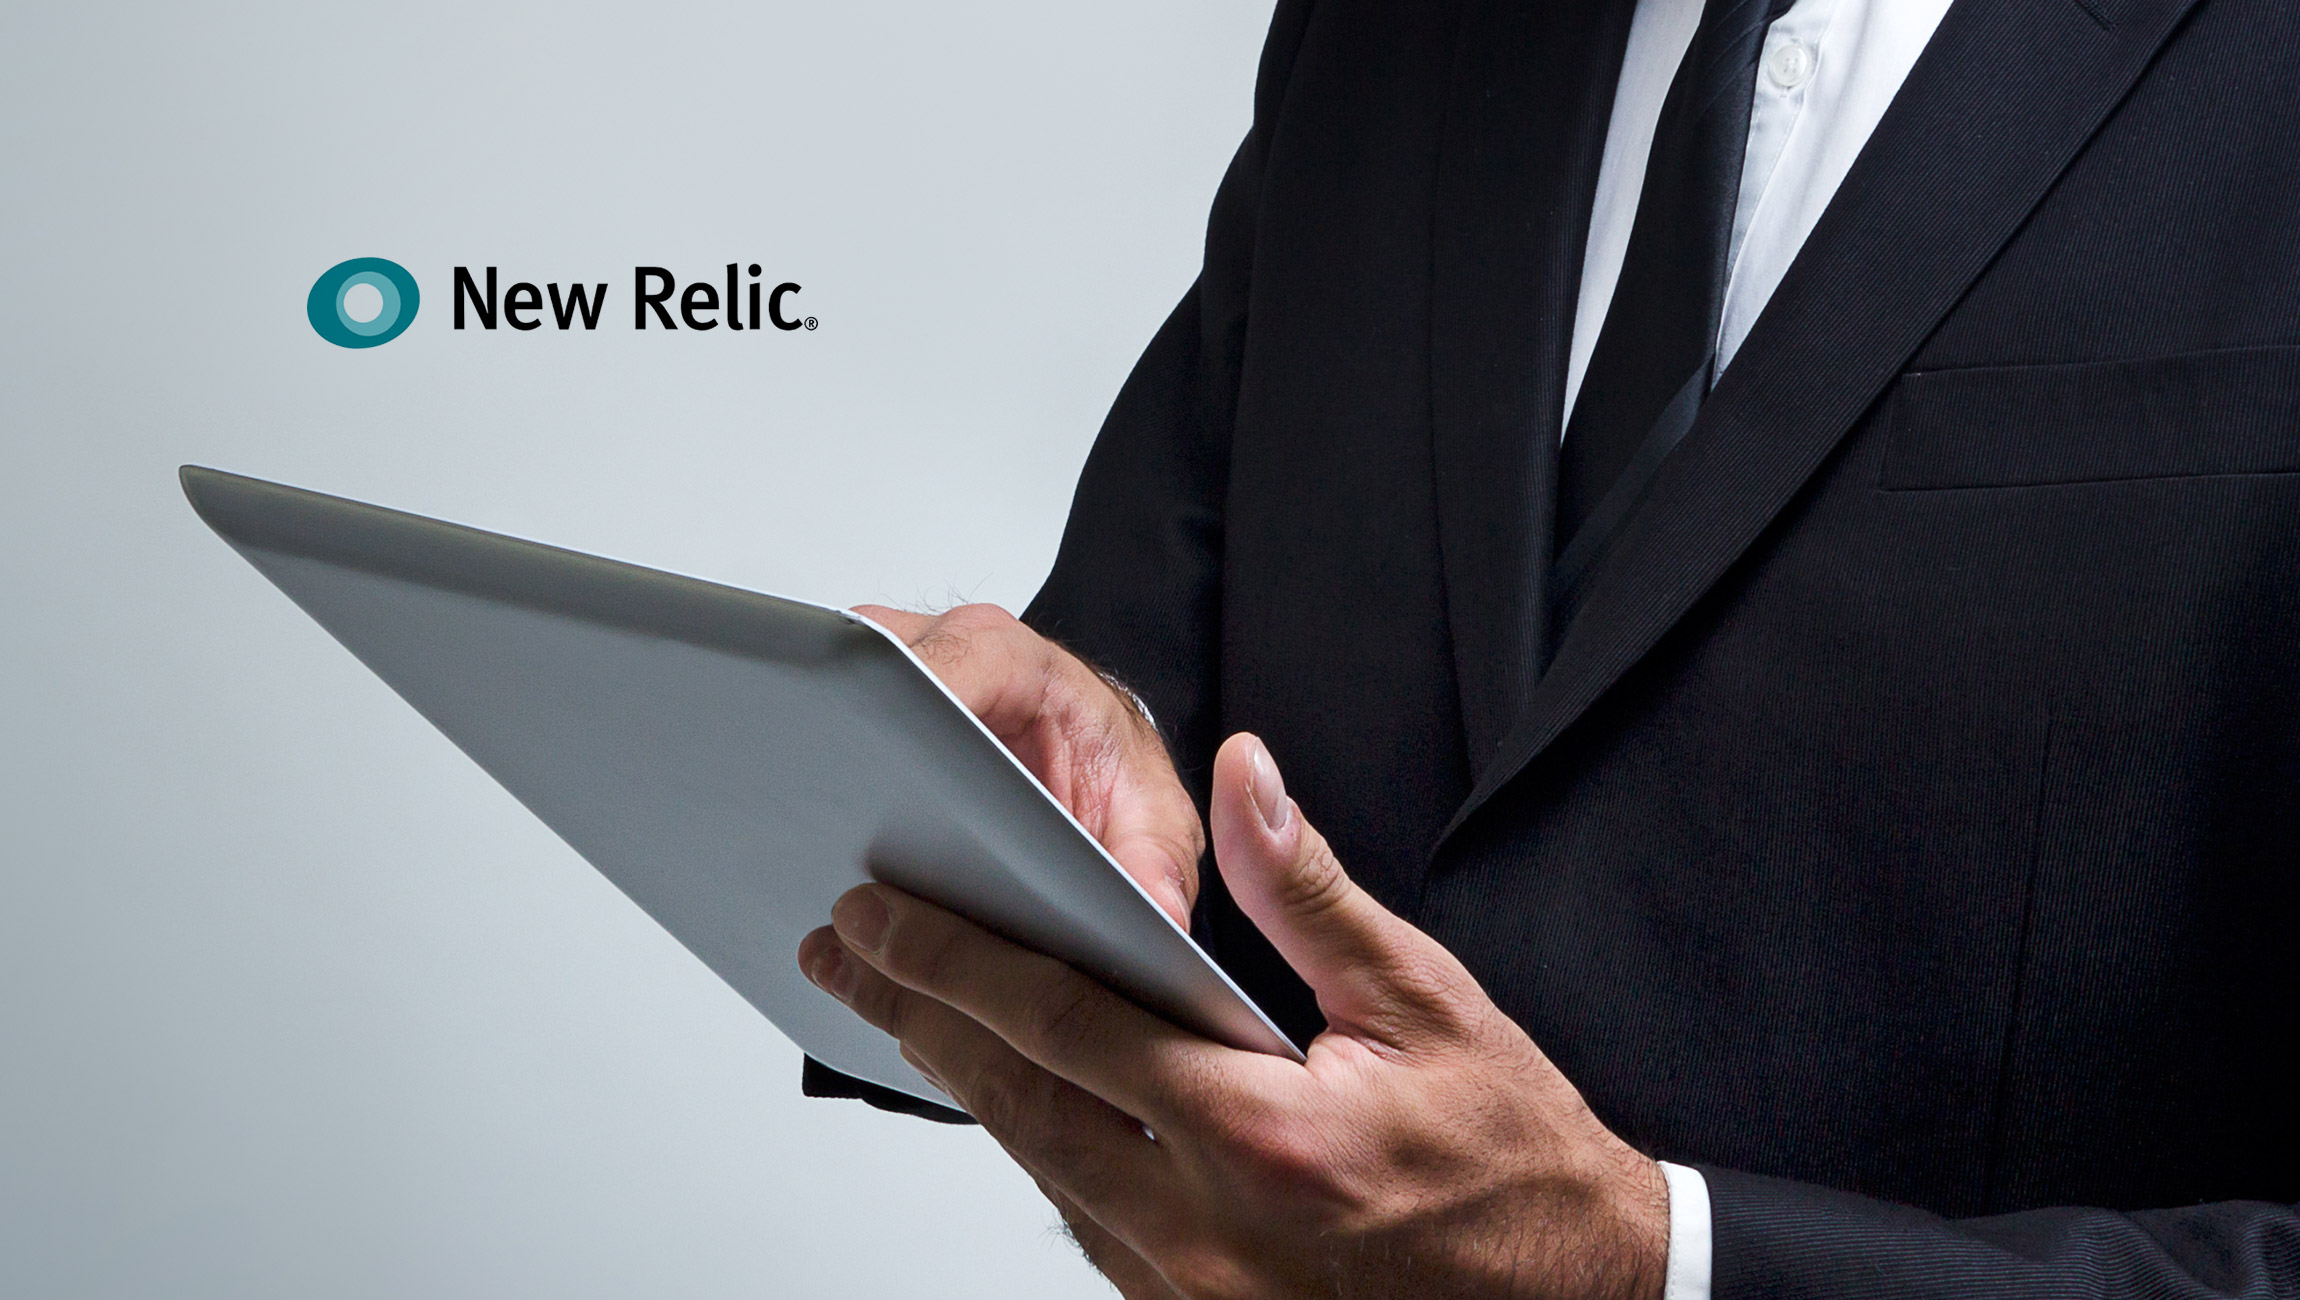 Andrew Lawson Joins New Relic as Executive Vice President and General Manager of EMEA